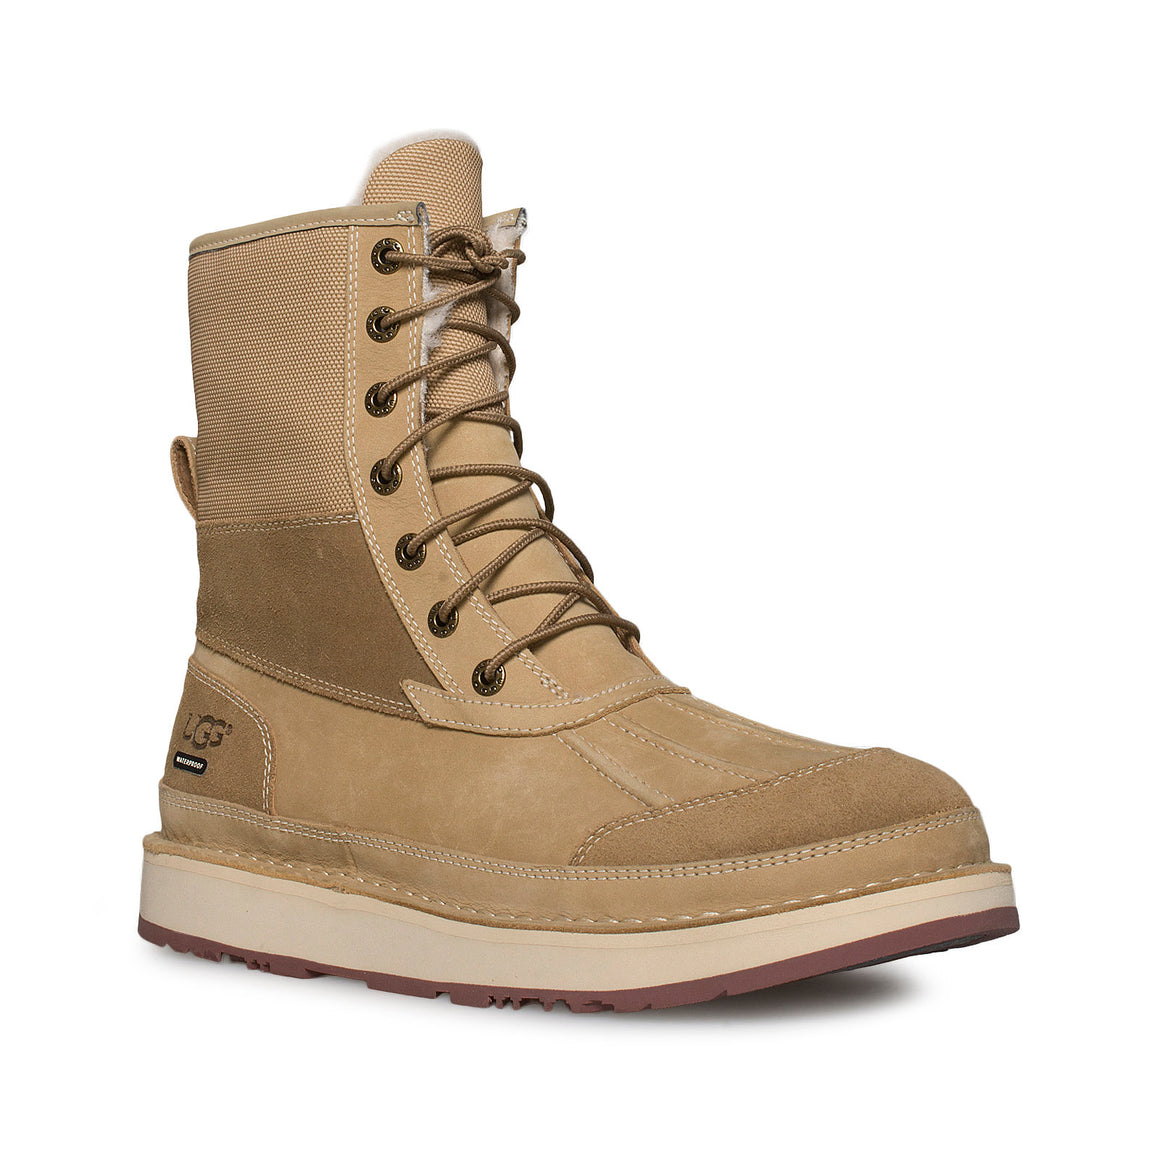 UGG Avalanche Butte Desert Tan Boots - Men's